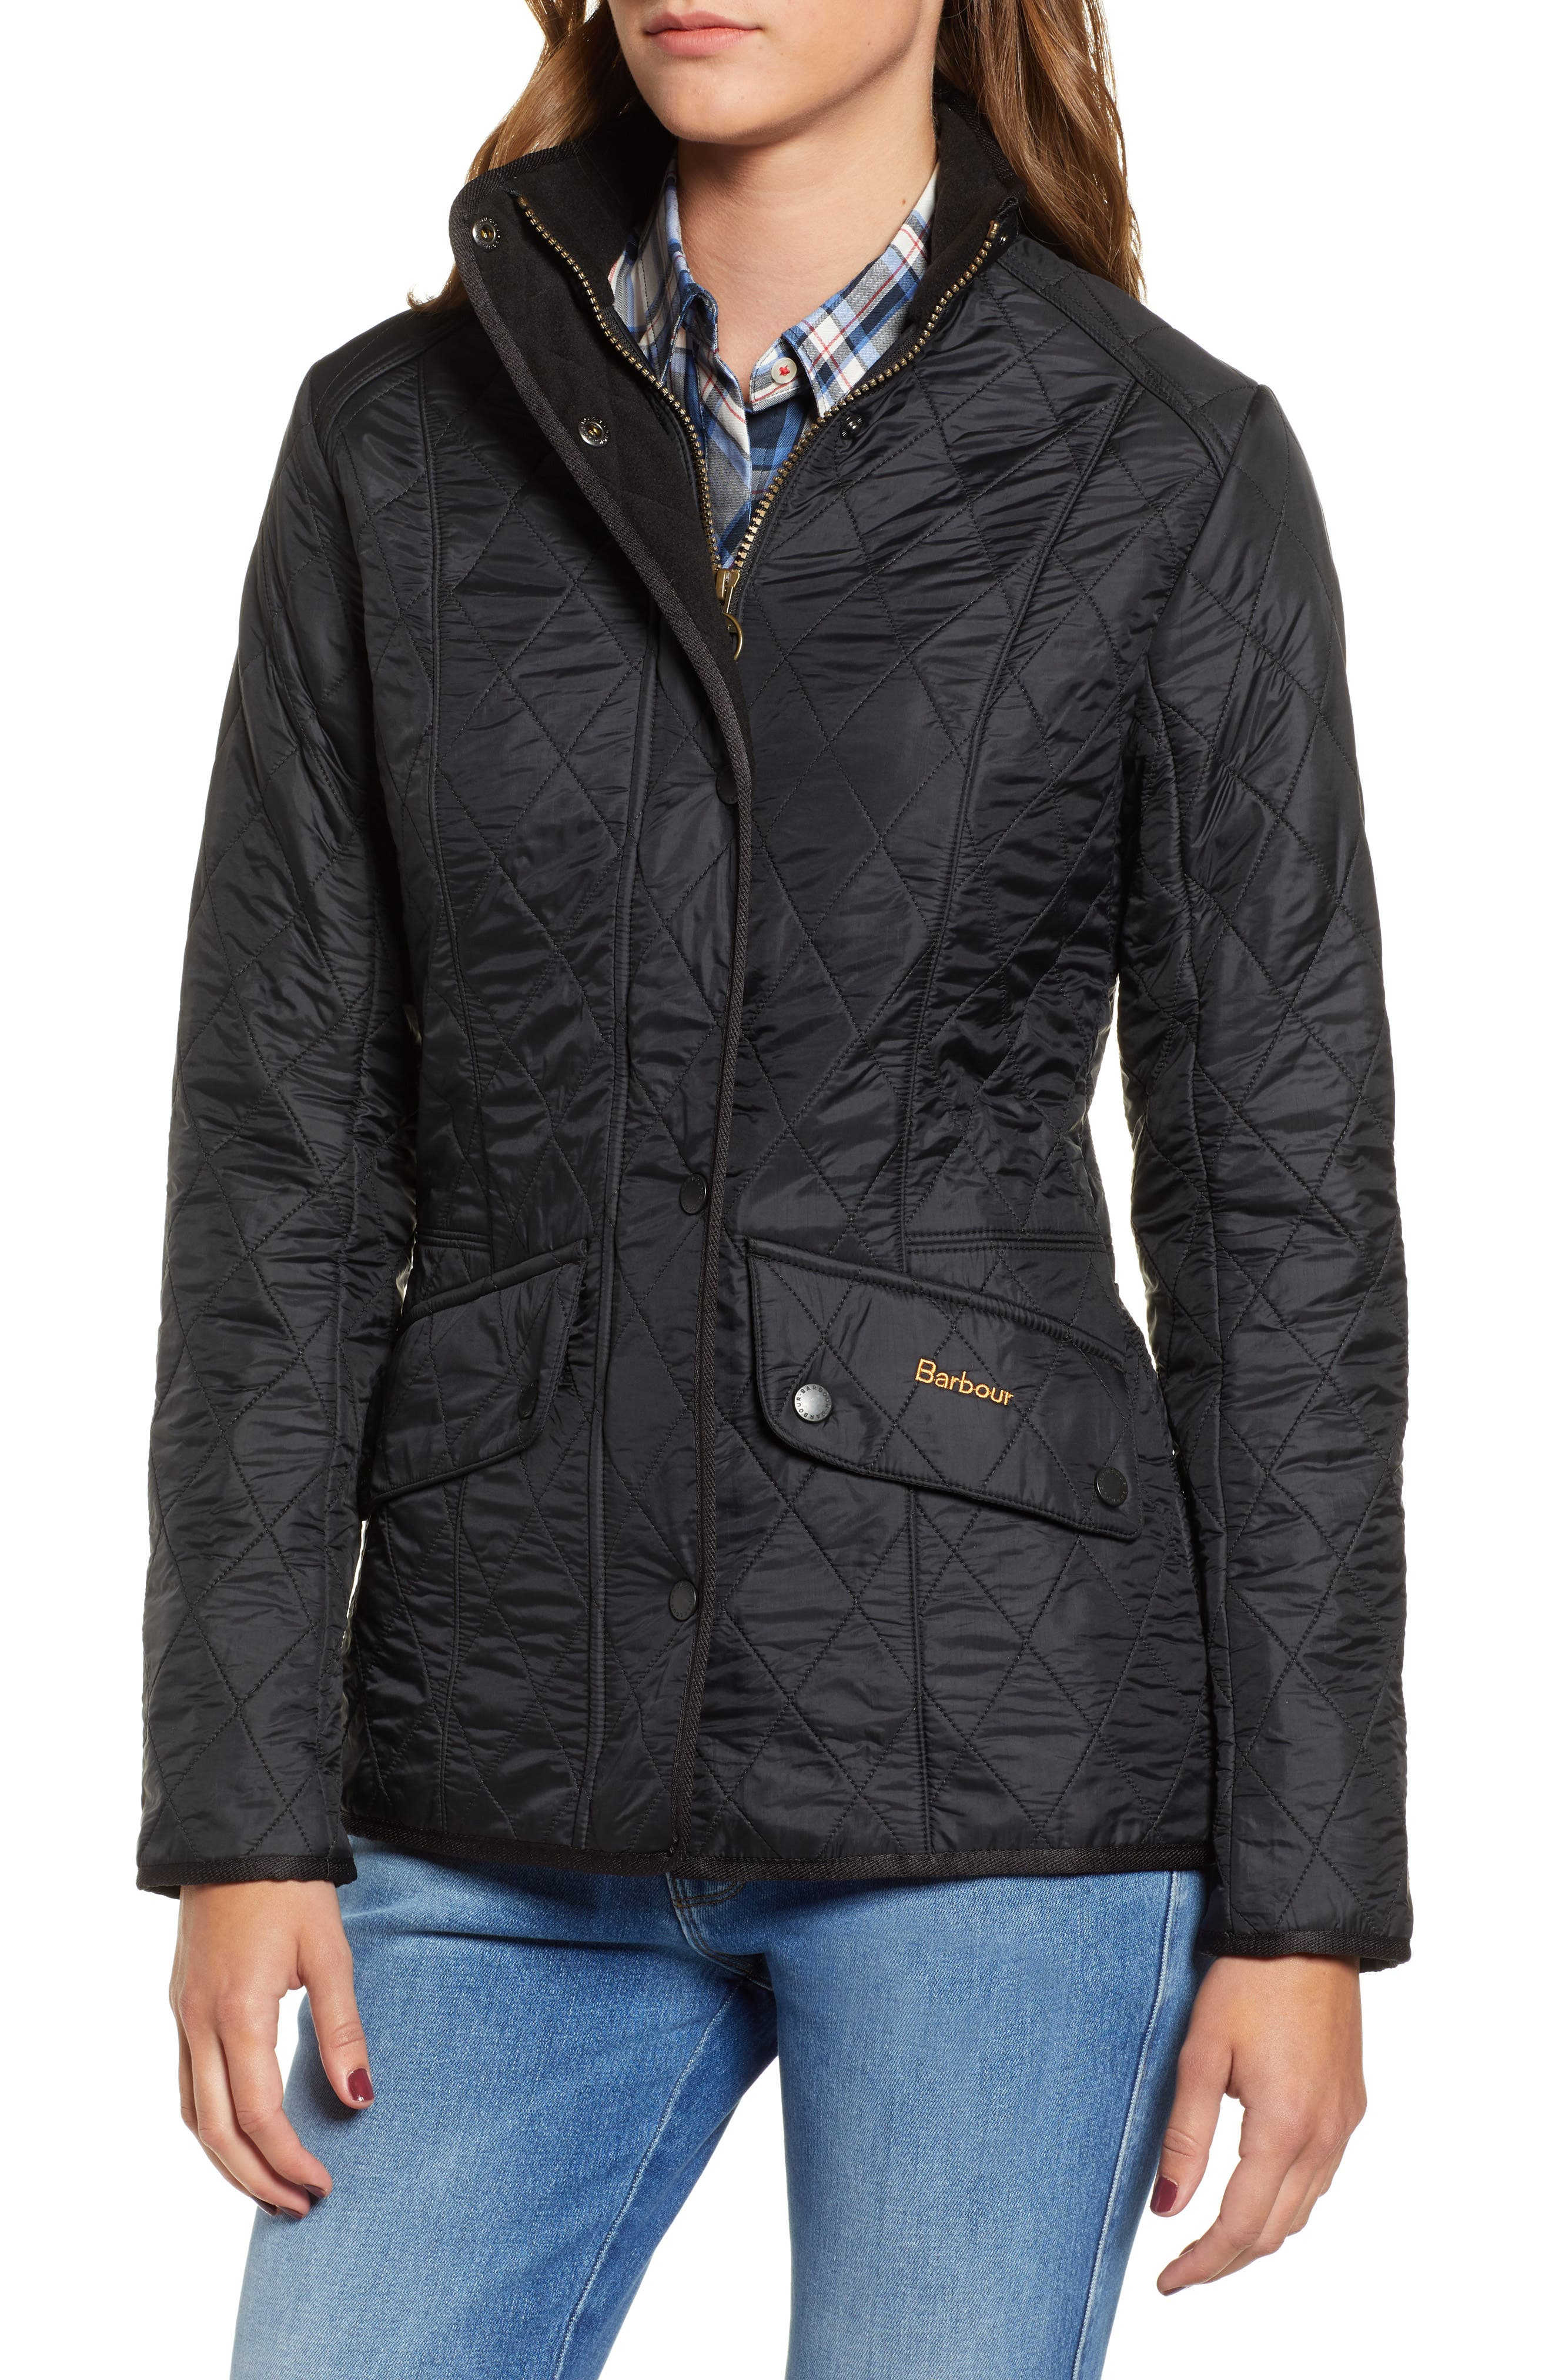 'Cavalry' Quilted Jacket,                             Alternate thumbnail 4, color,                             001